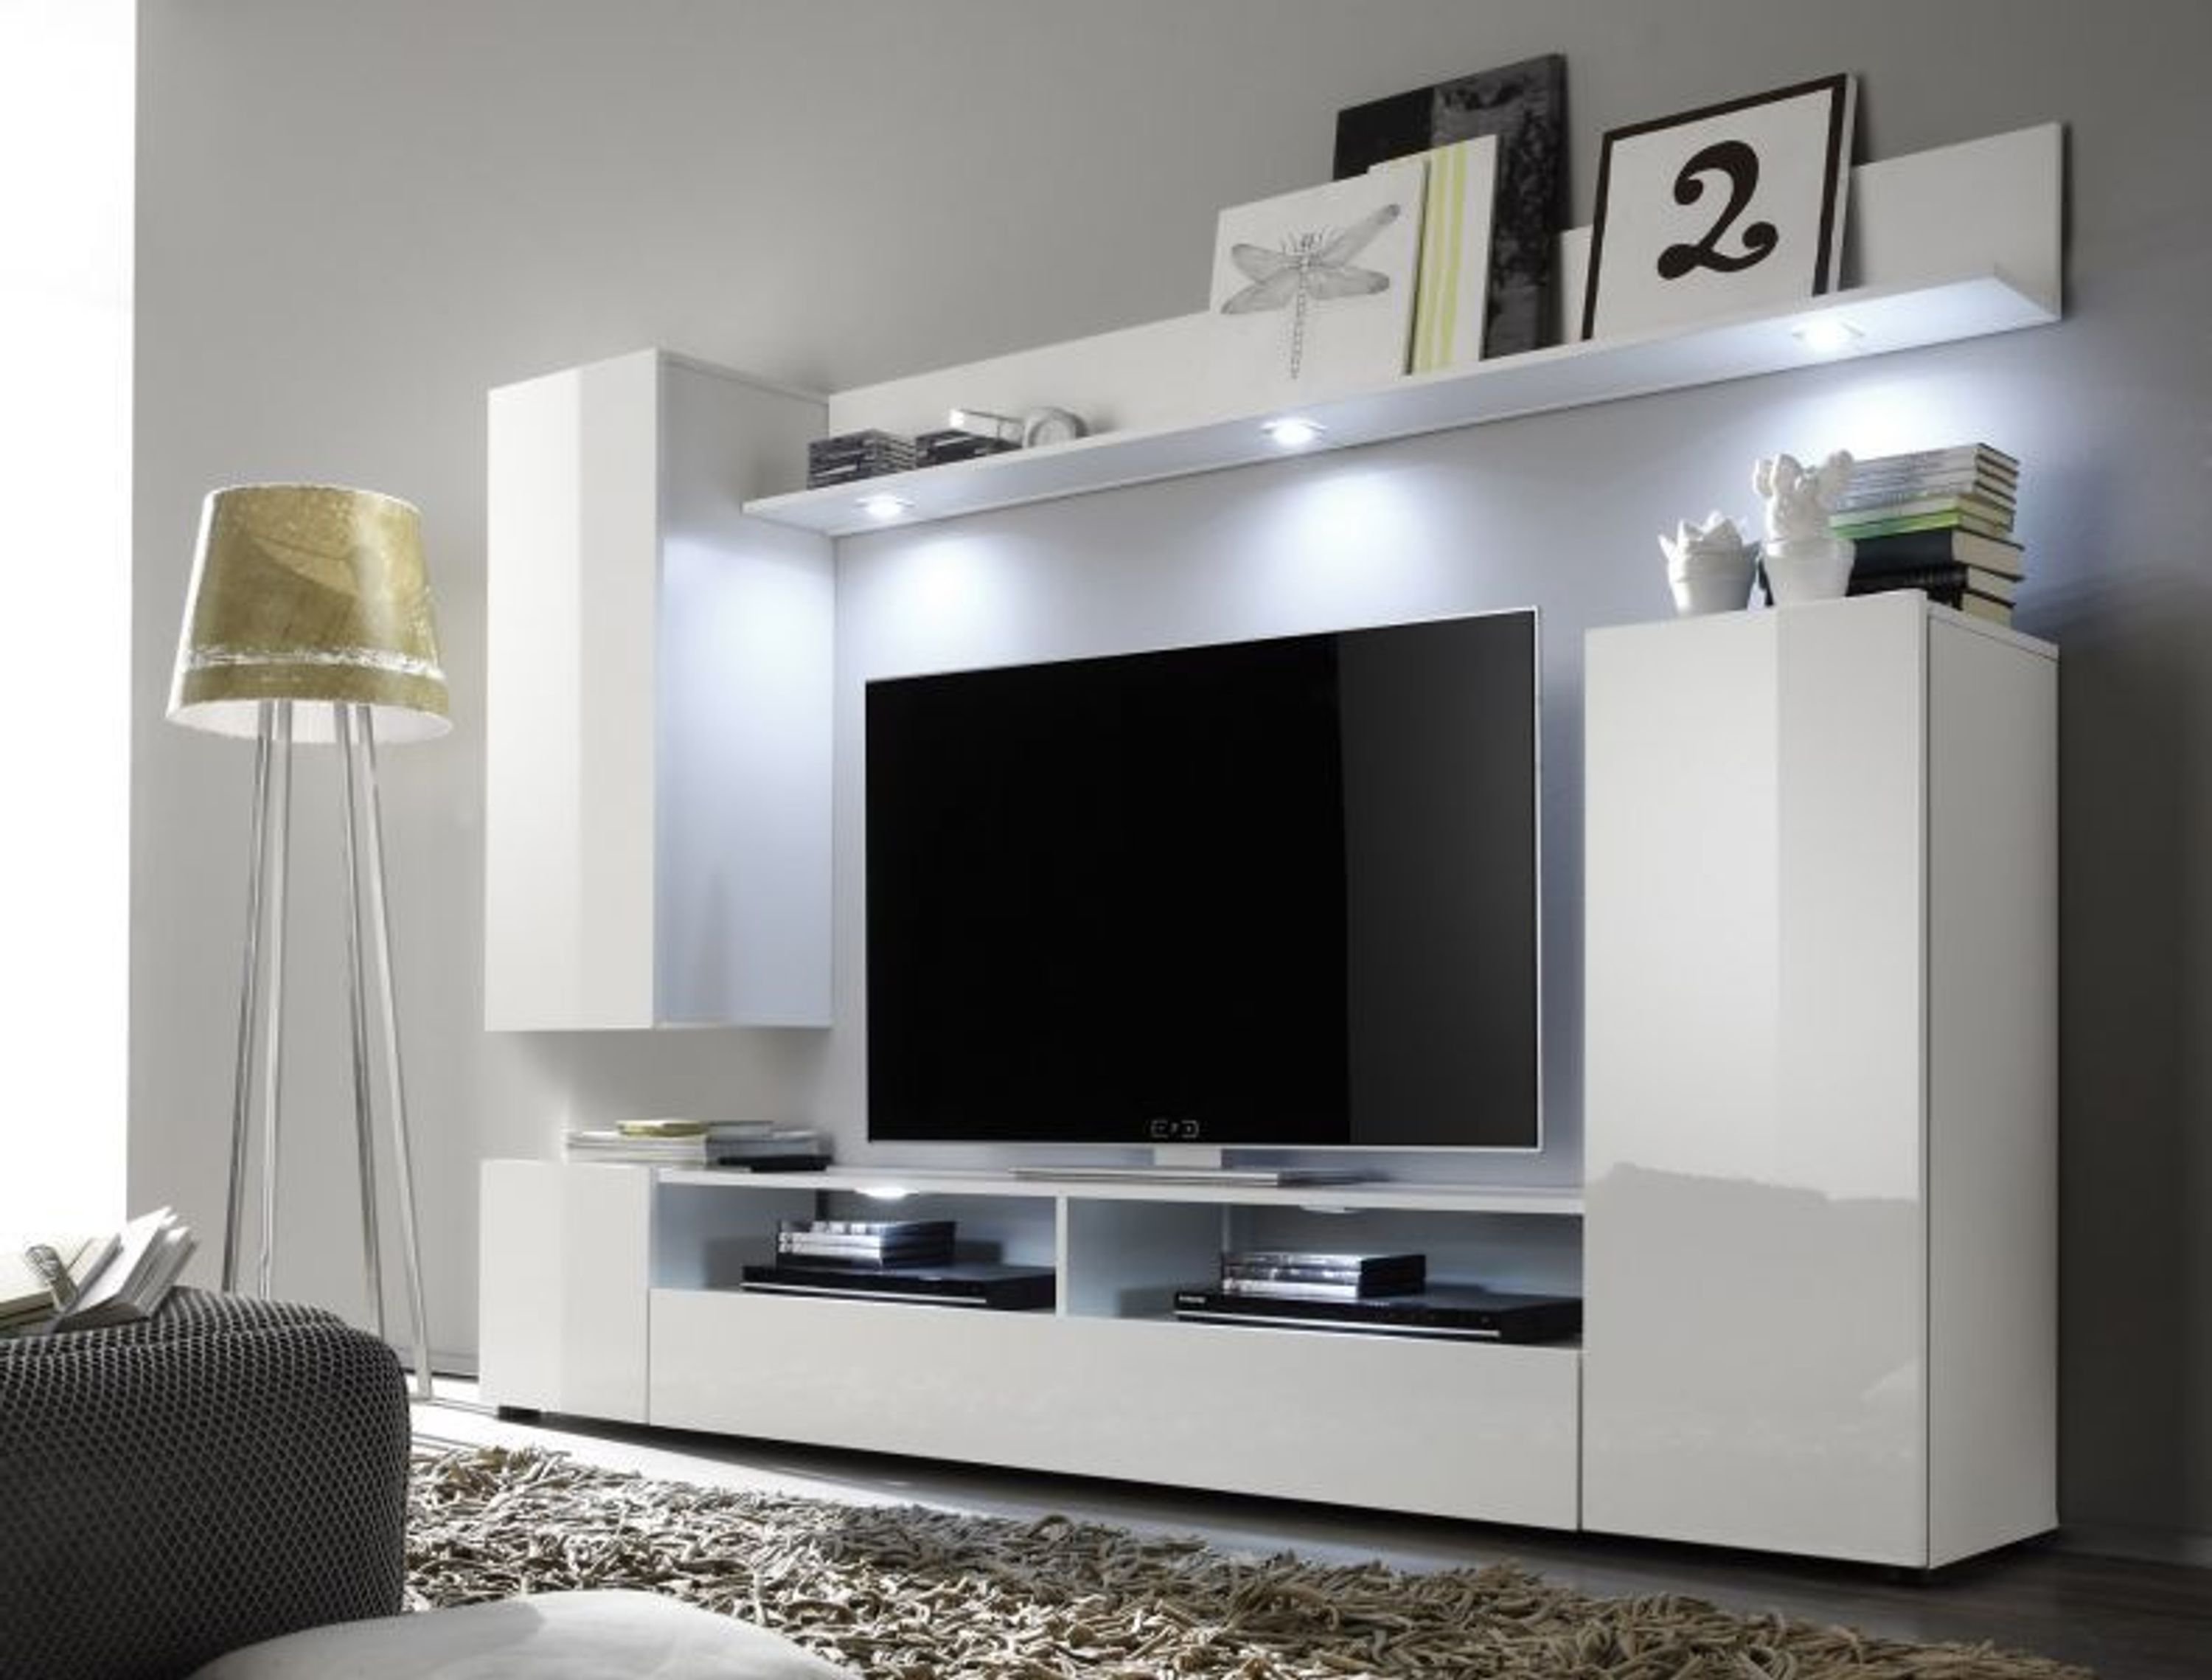 wohnwand wei hochglanz fernsehschrank wohnzimmer tv hifi m bel medienwand dos kaufen bei. Black Bedroom Furniture Sets. Home Design Ideas